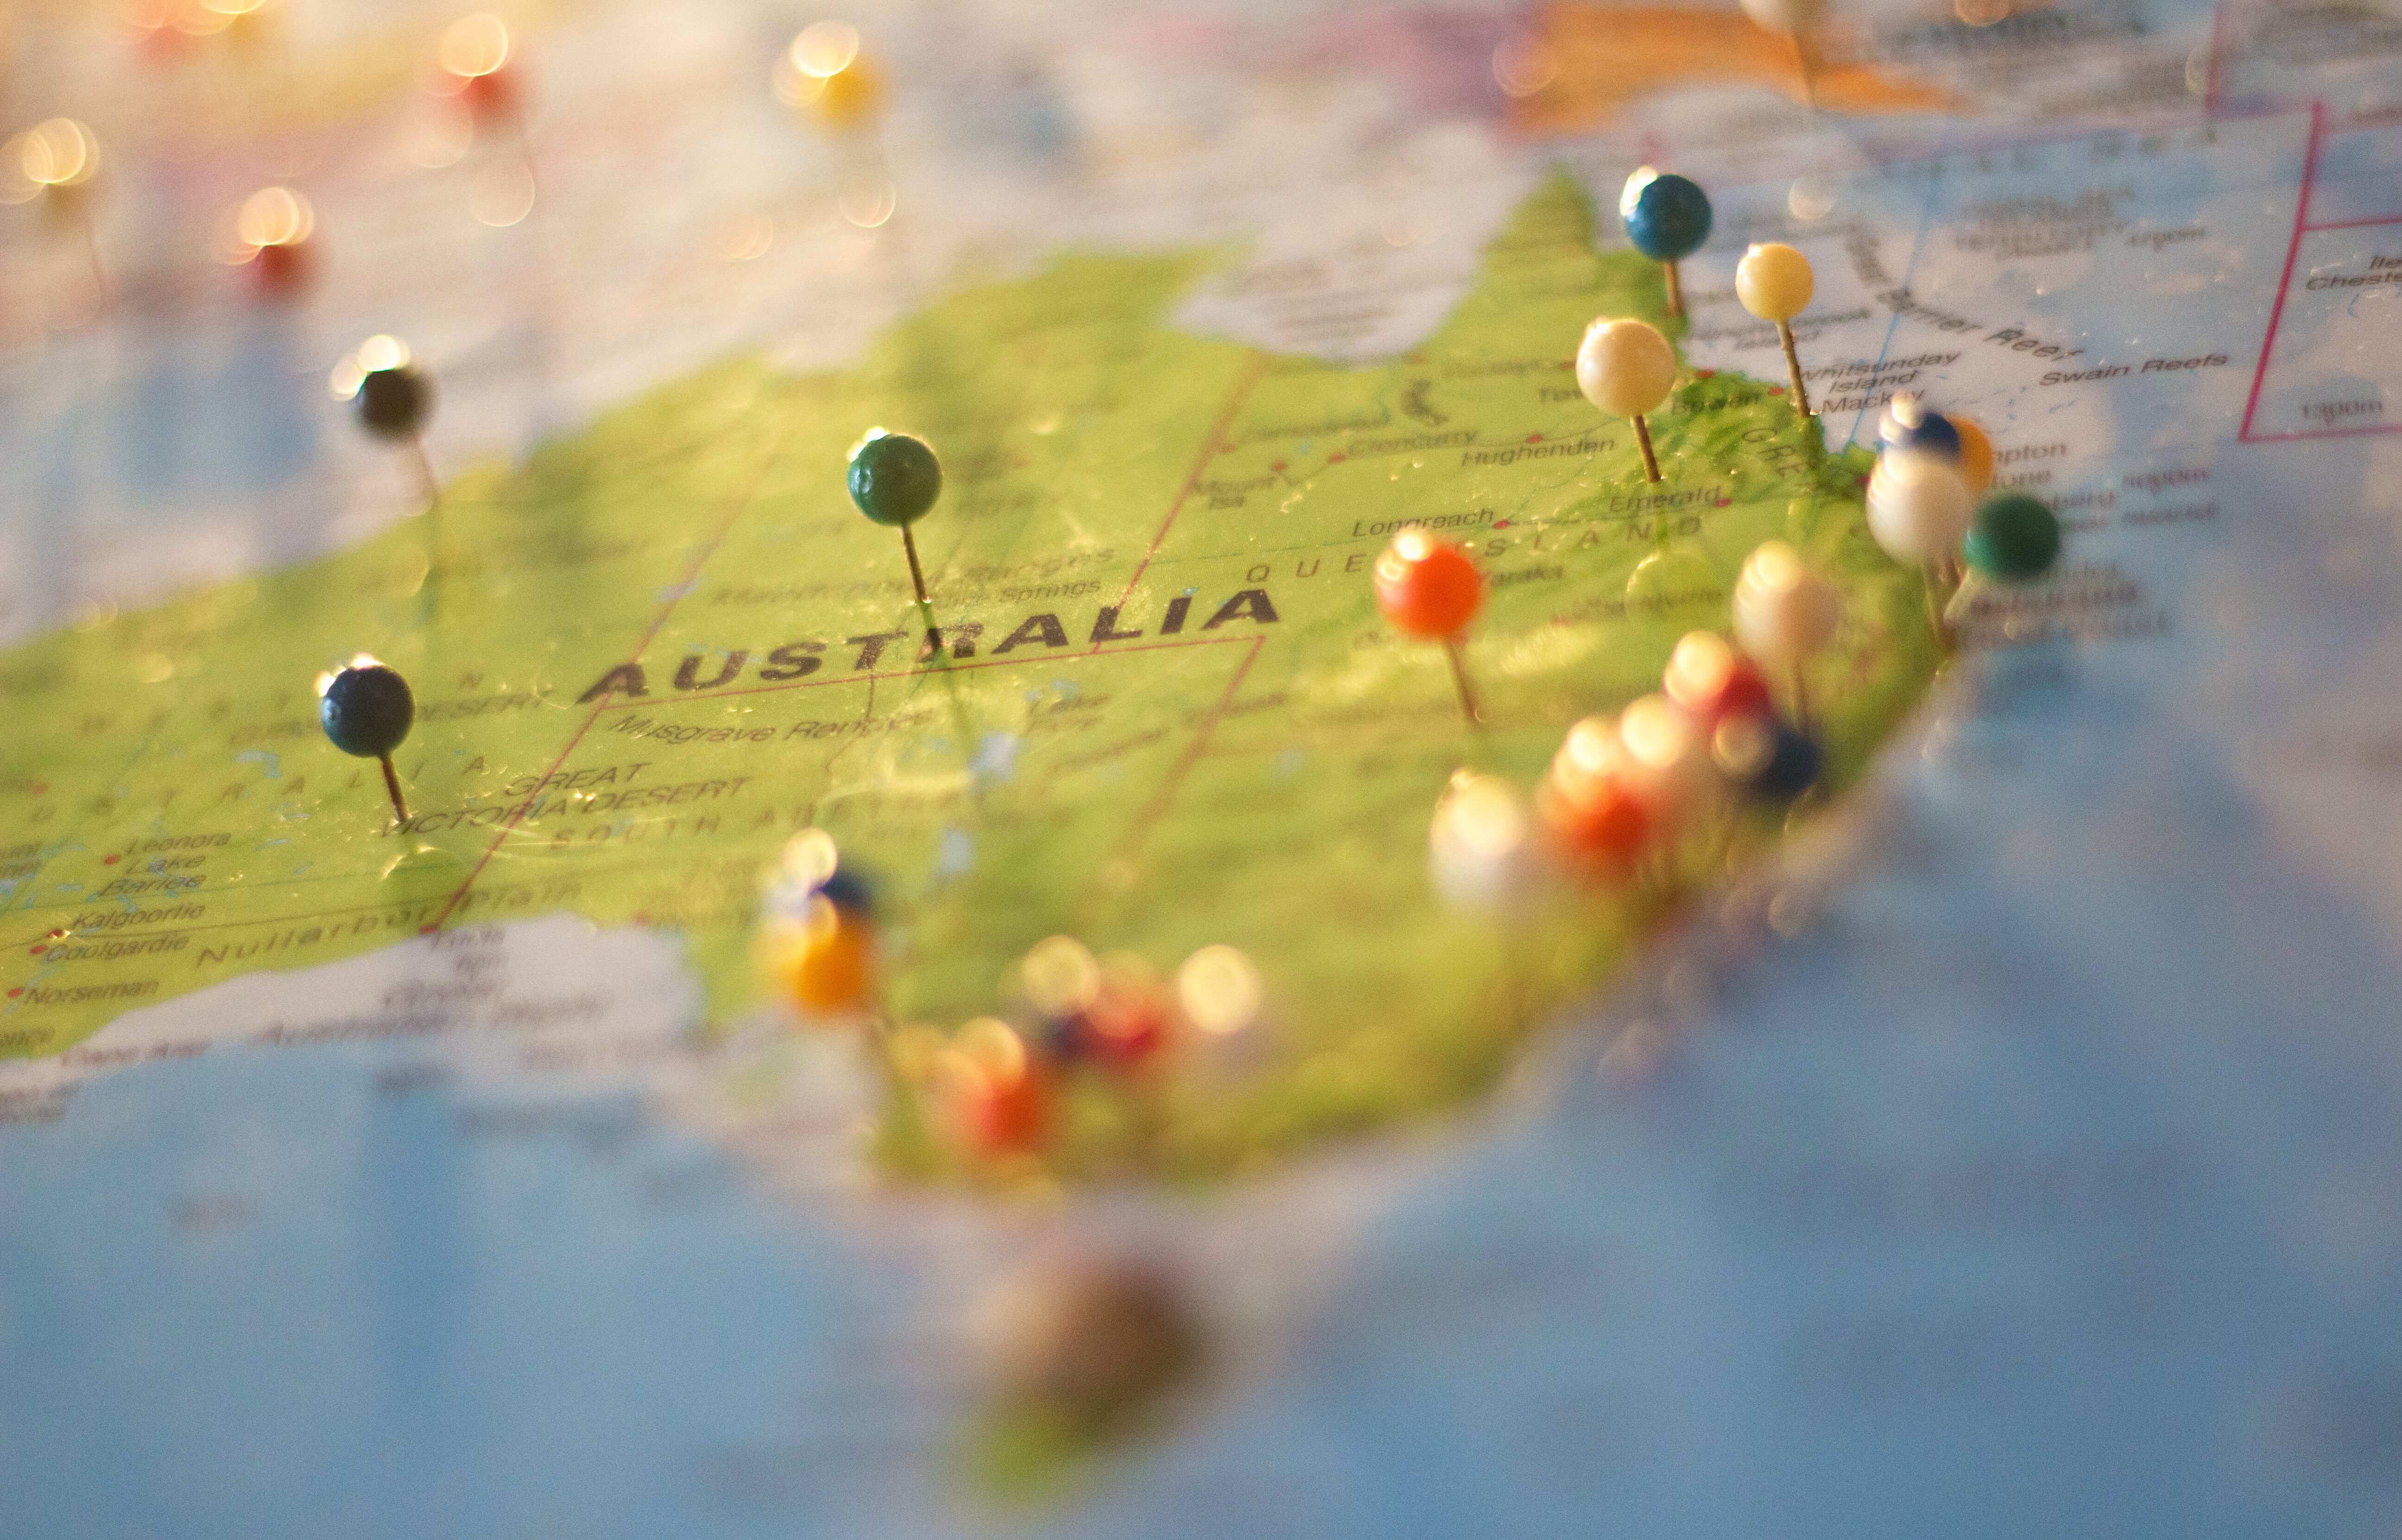 A map of Australia with pins